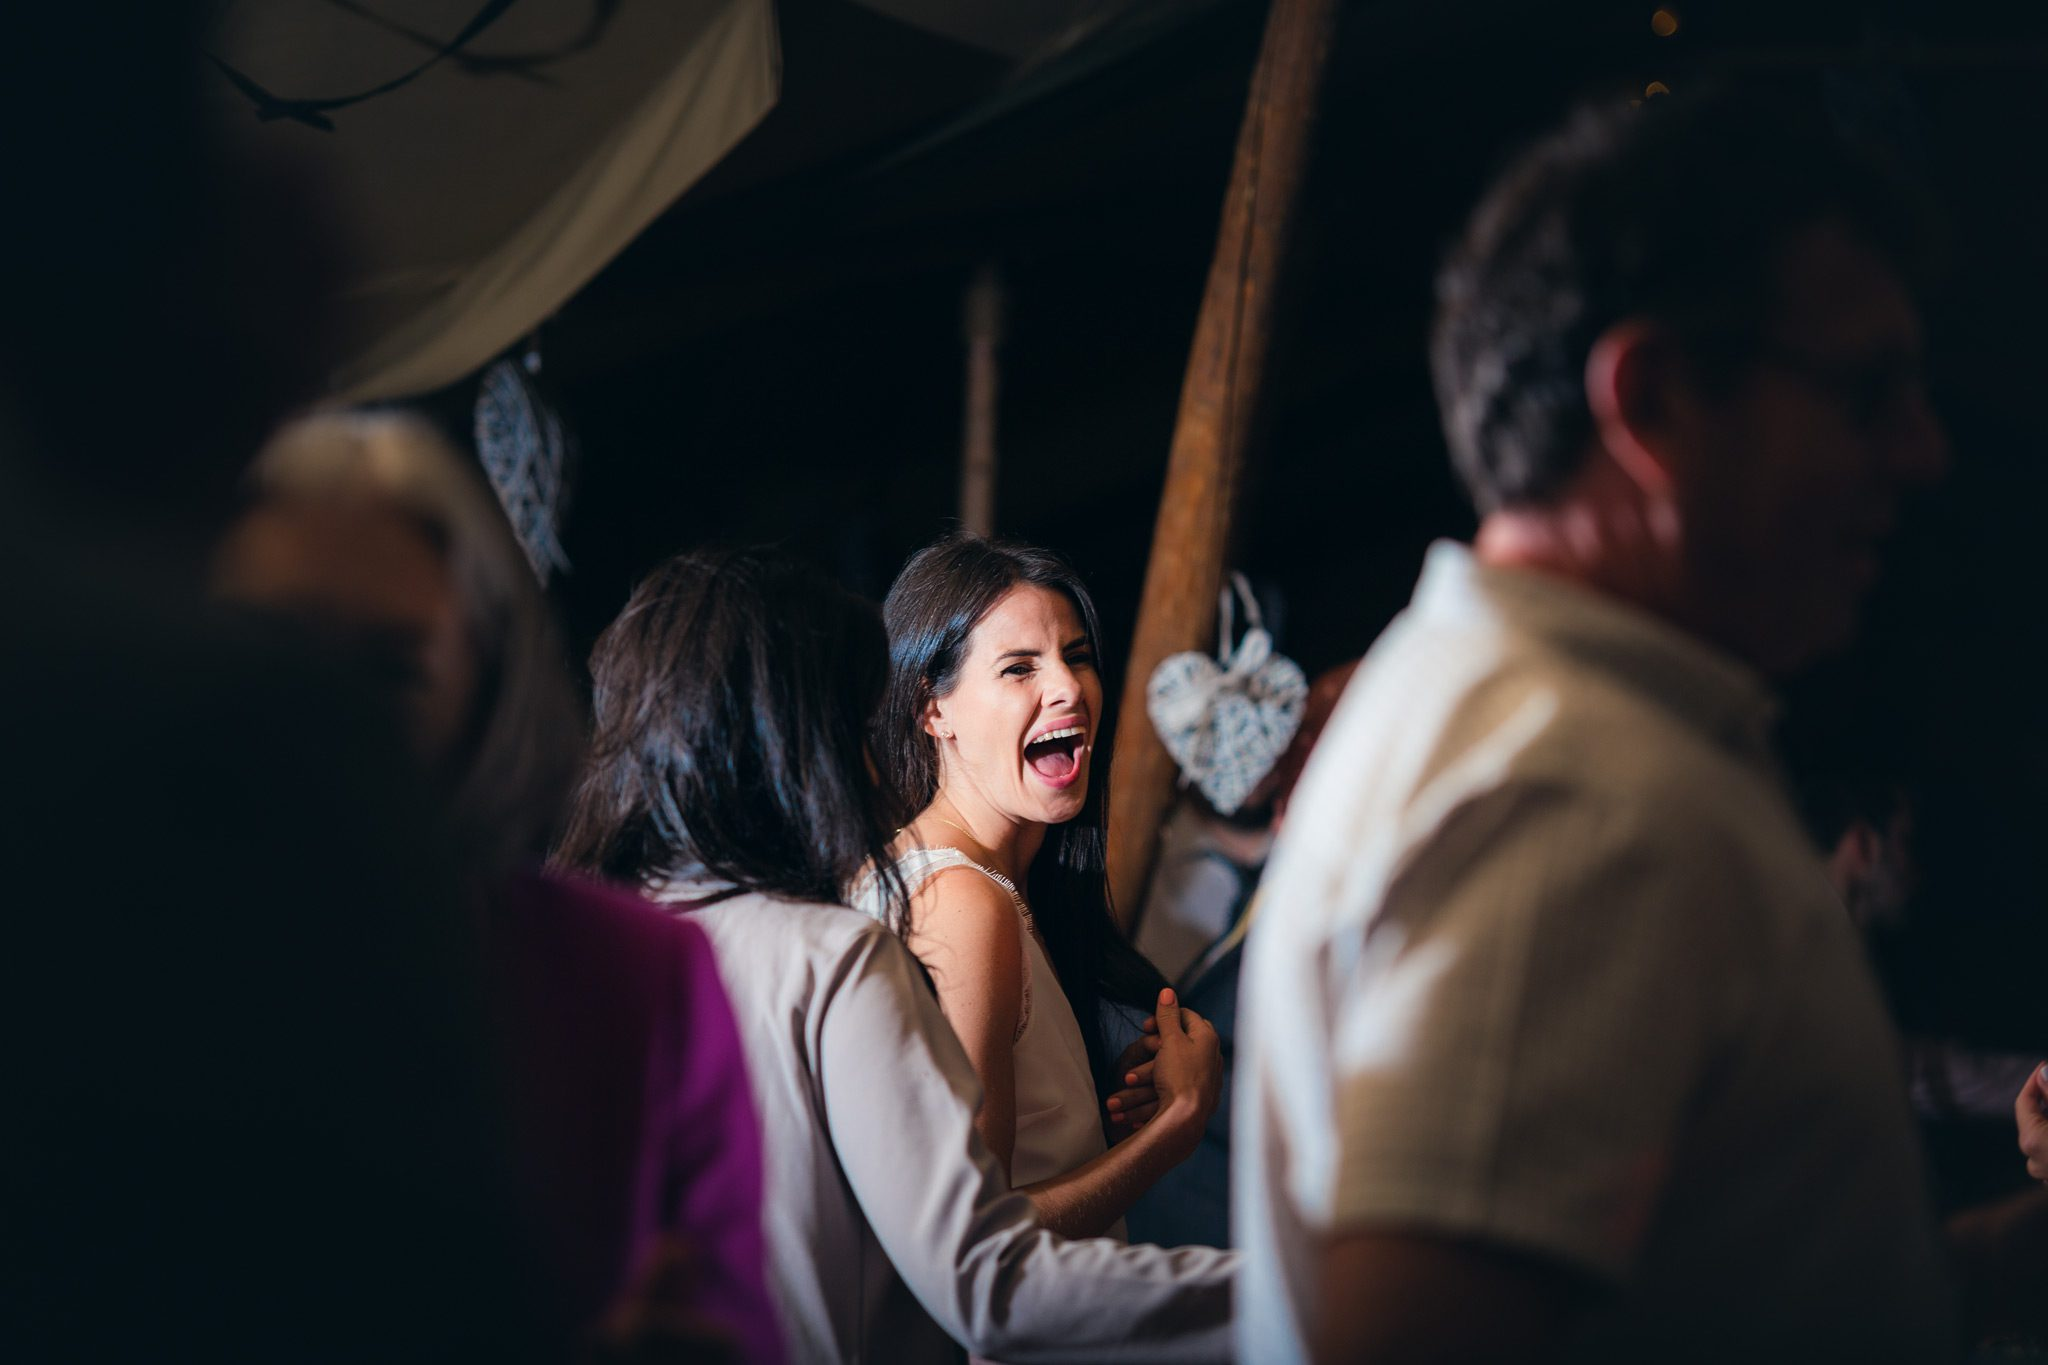 Guest laughing on the dance floor in the tipi